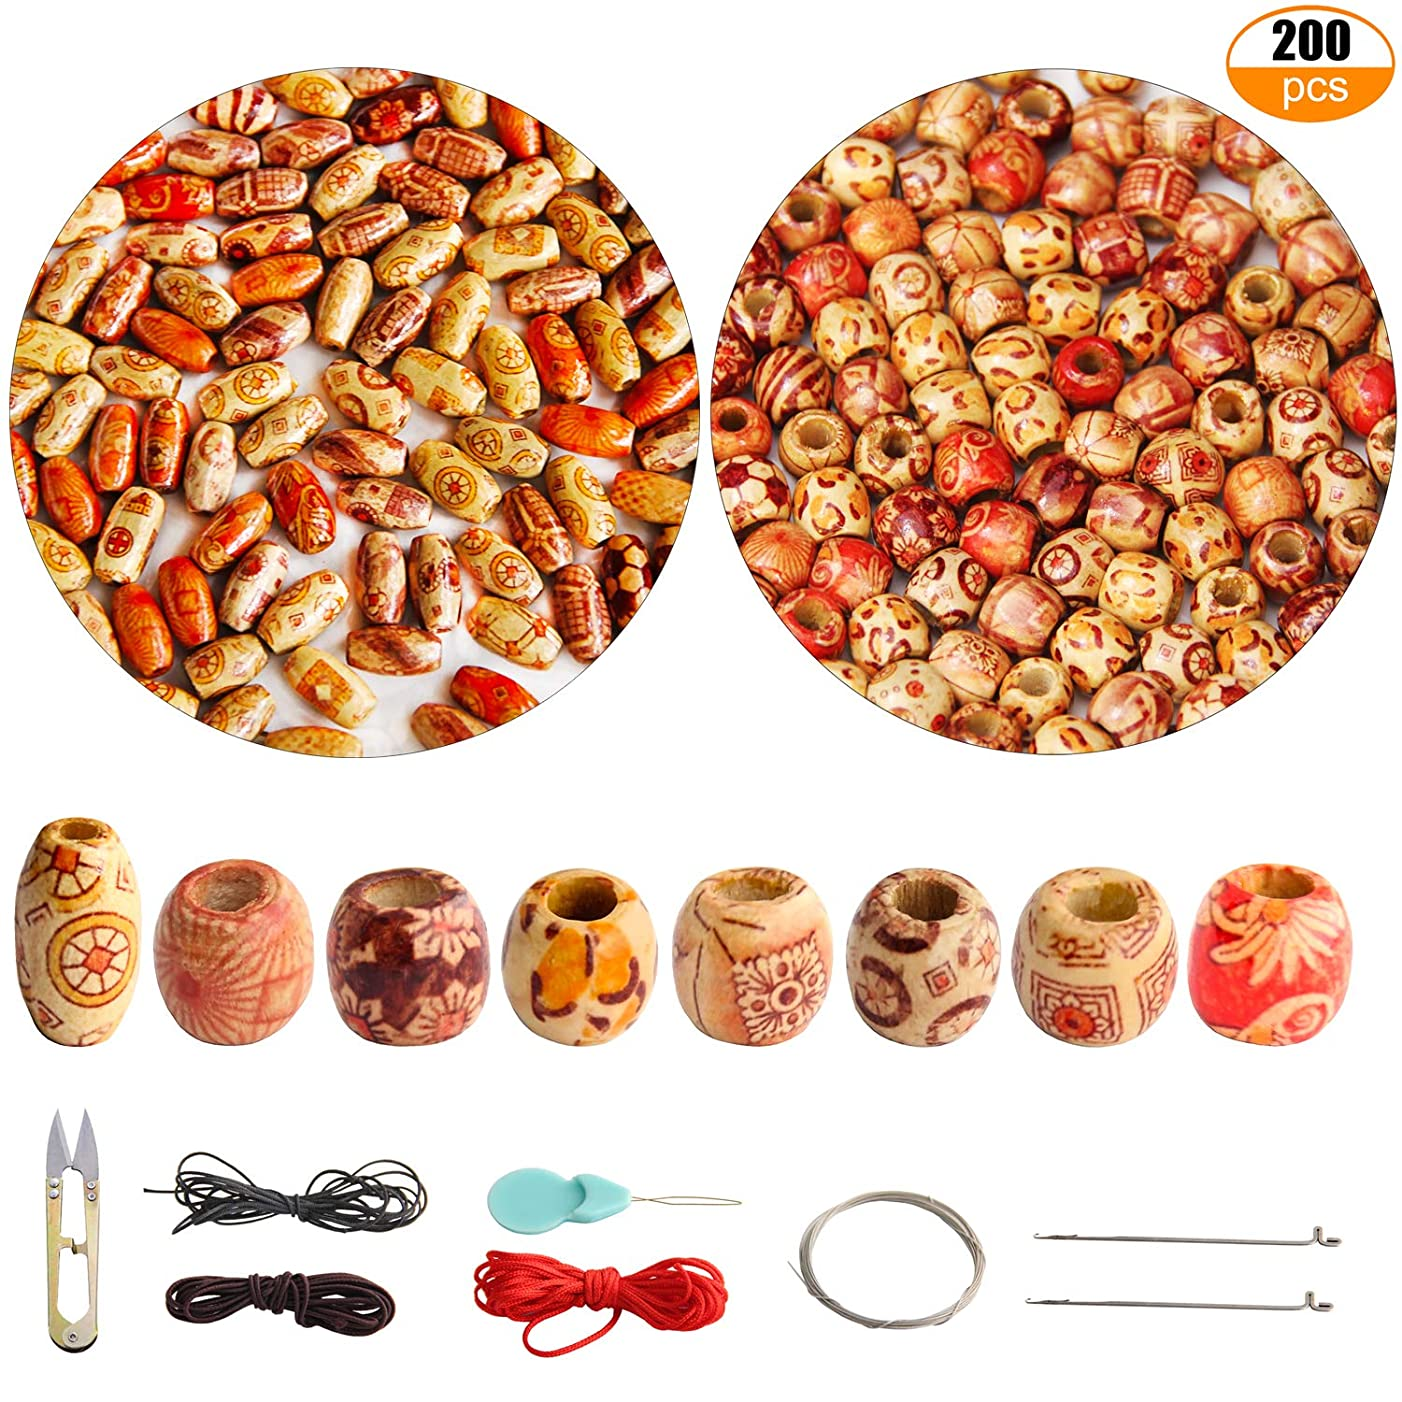 200pcs 12mm Natural Painted Wood Beads Round Loose Wooden Bead Bulk with Scissors Threader Beading Cord for Jewelry Making Craft Hair DIY Macrame Rosary Bracelet Necklace (Ball and Tubular Shape)